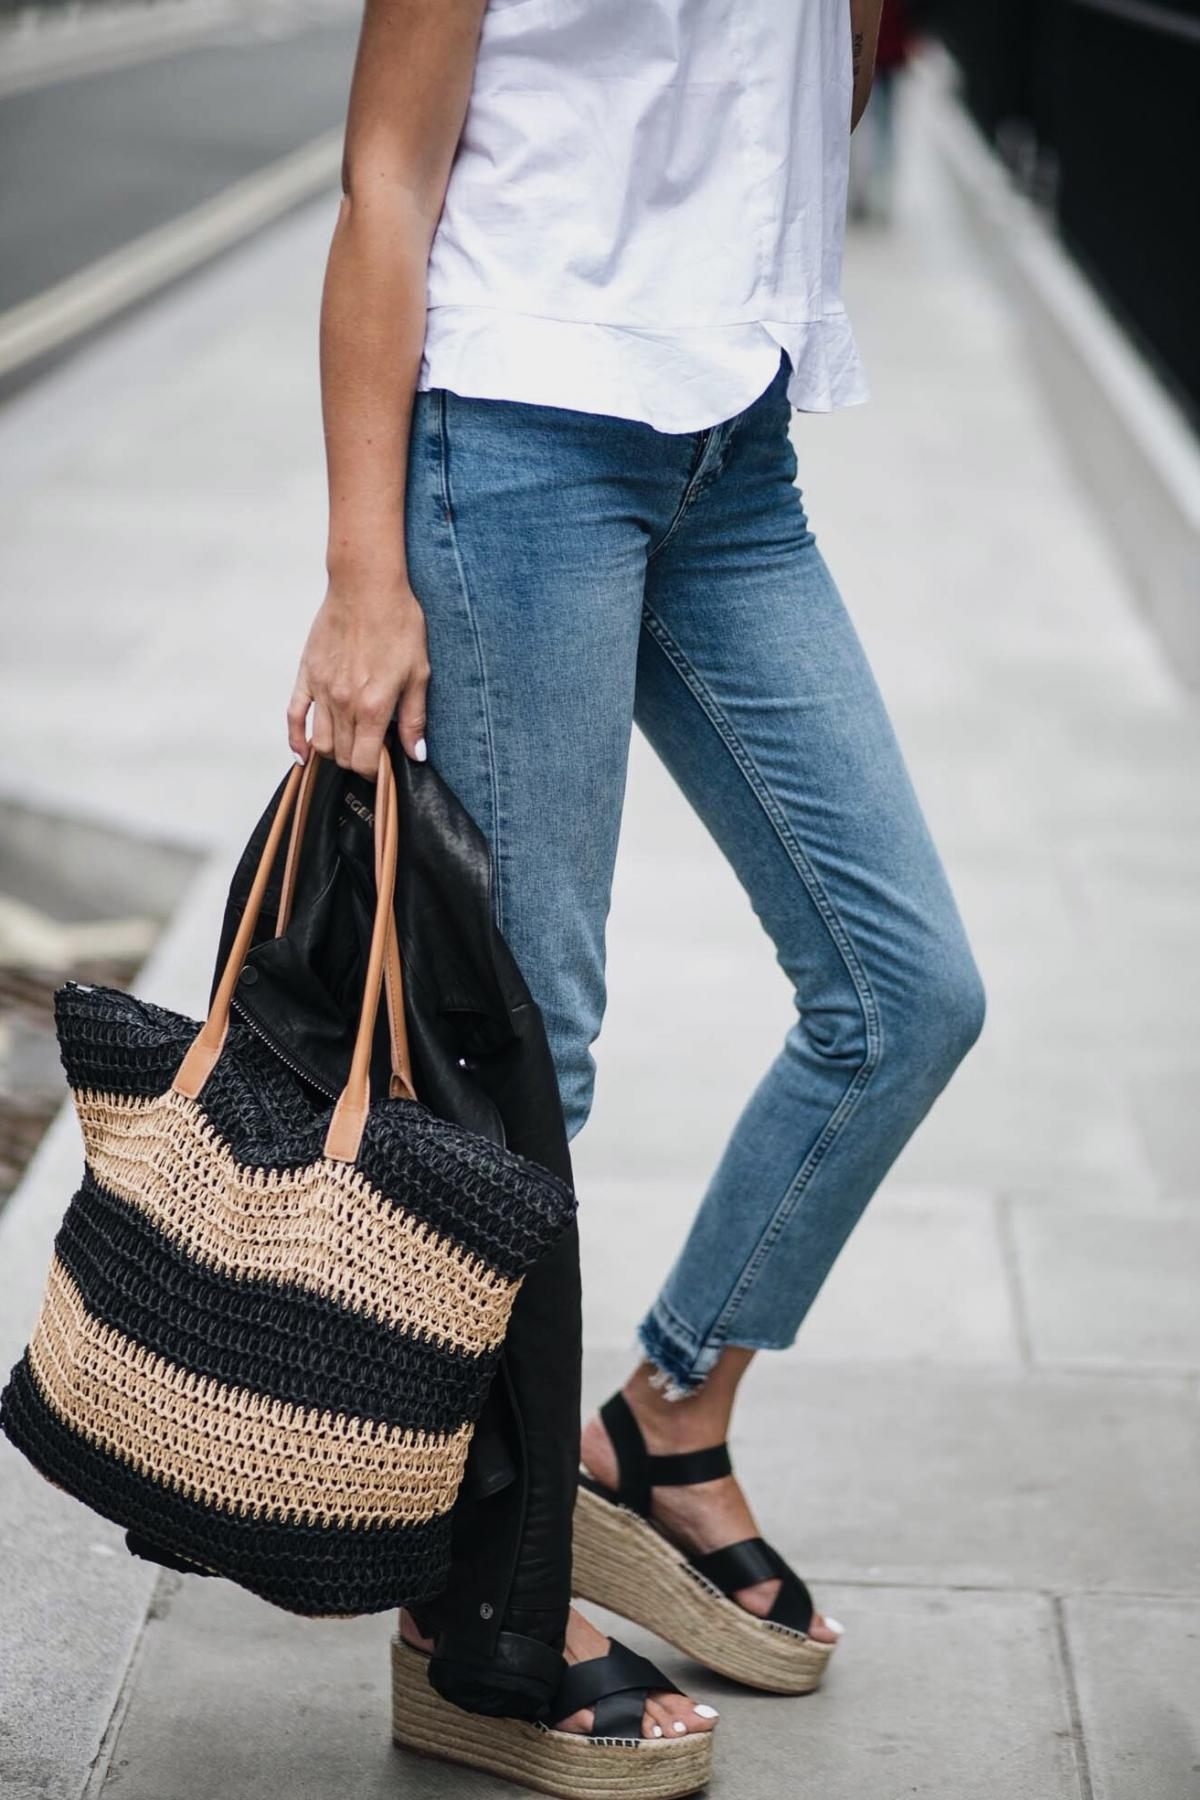 white frill hem sleeveless top, straight leg jeans with stepped hem, biker jacket, straw woven beach bag, wedge platform espadrilles sandals